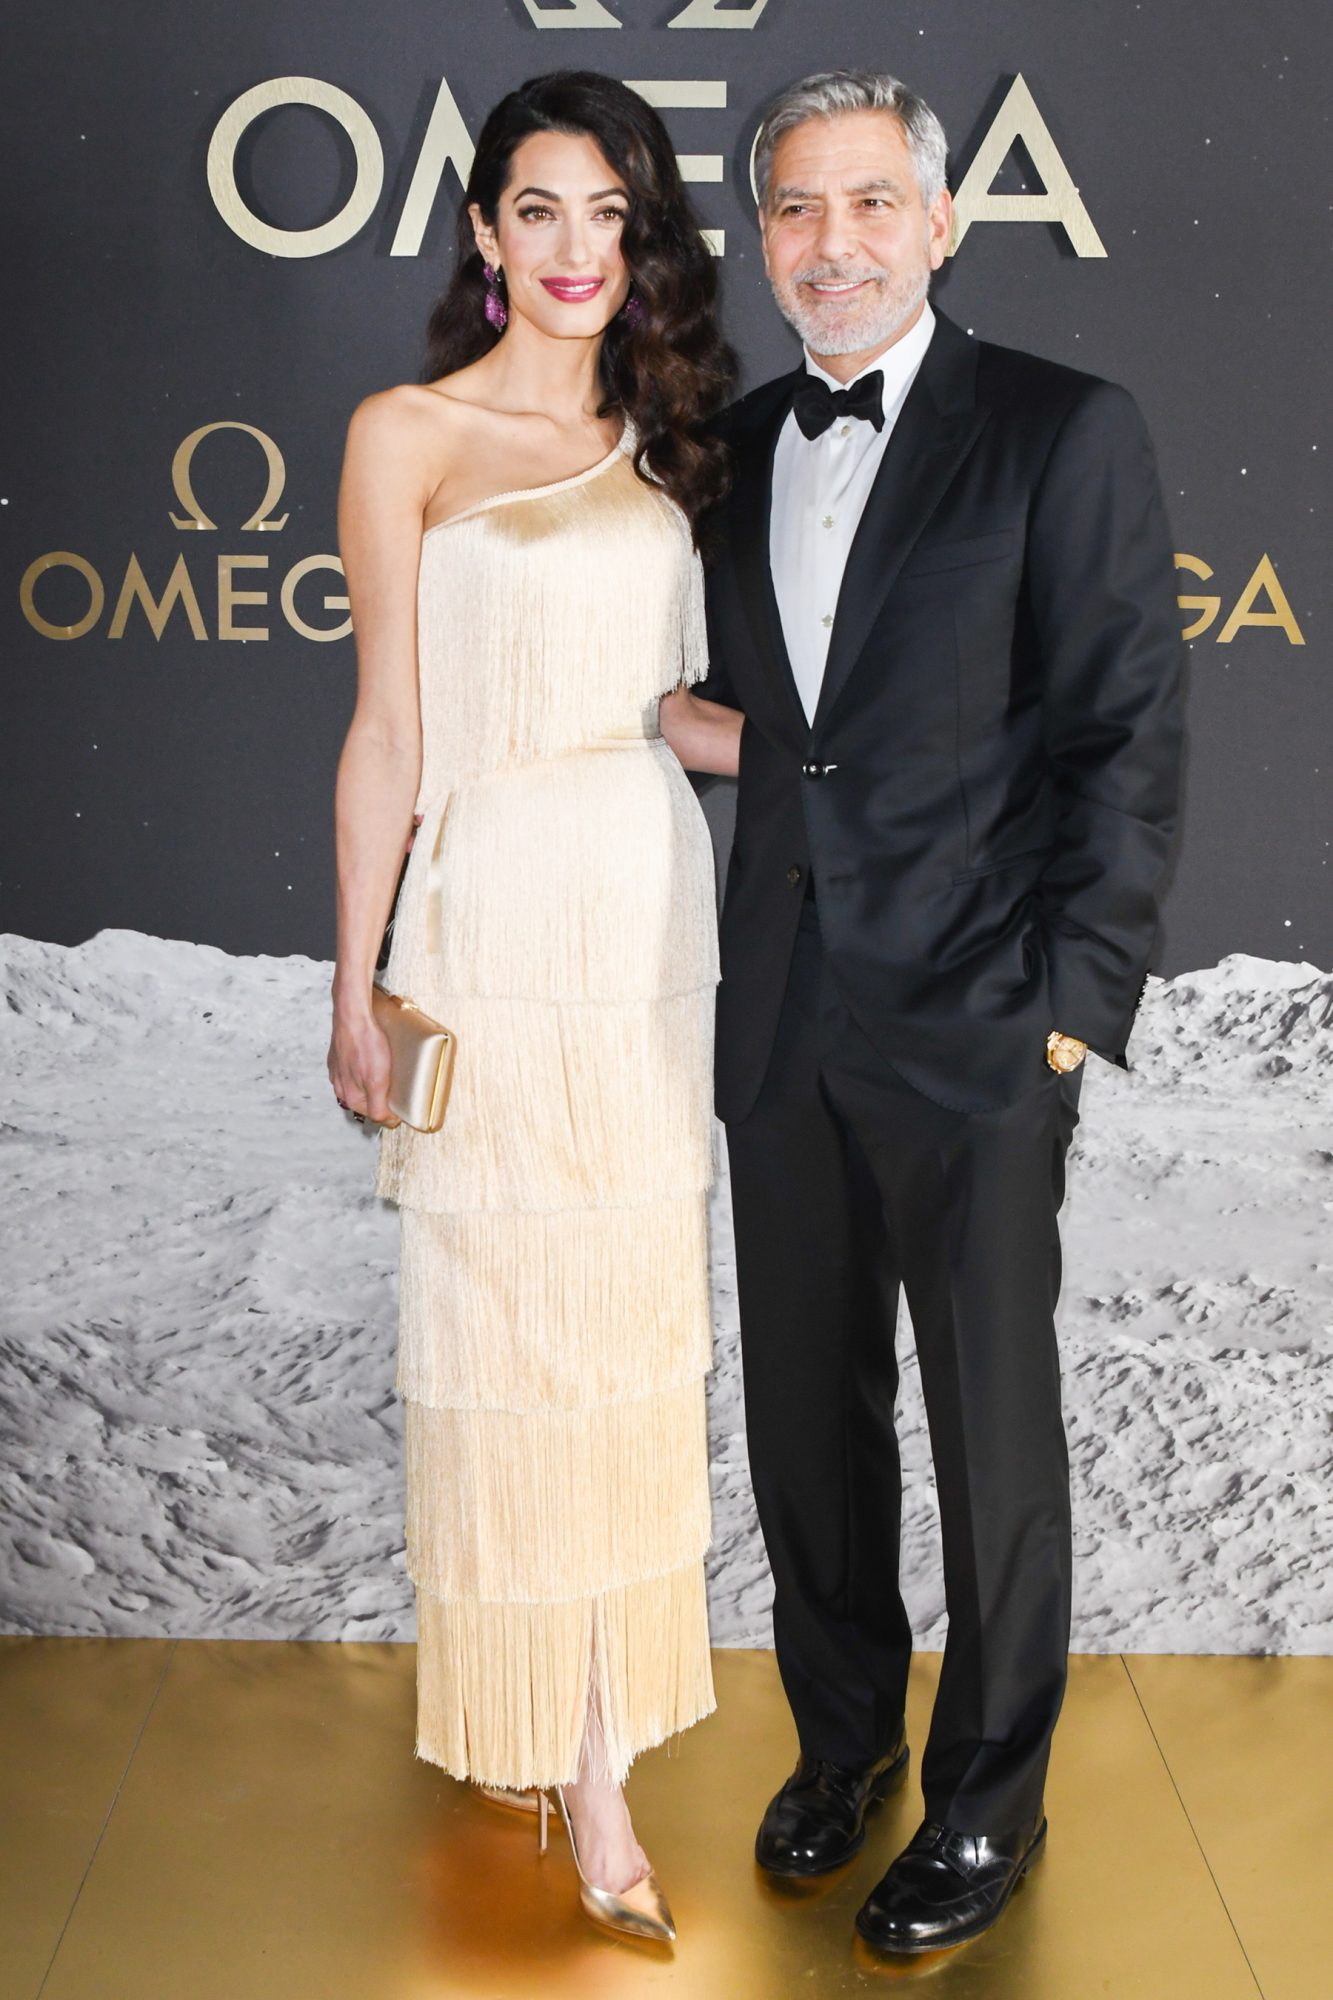 OMEGA 50th Anniversary Moon Landing Event, 2019